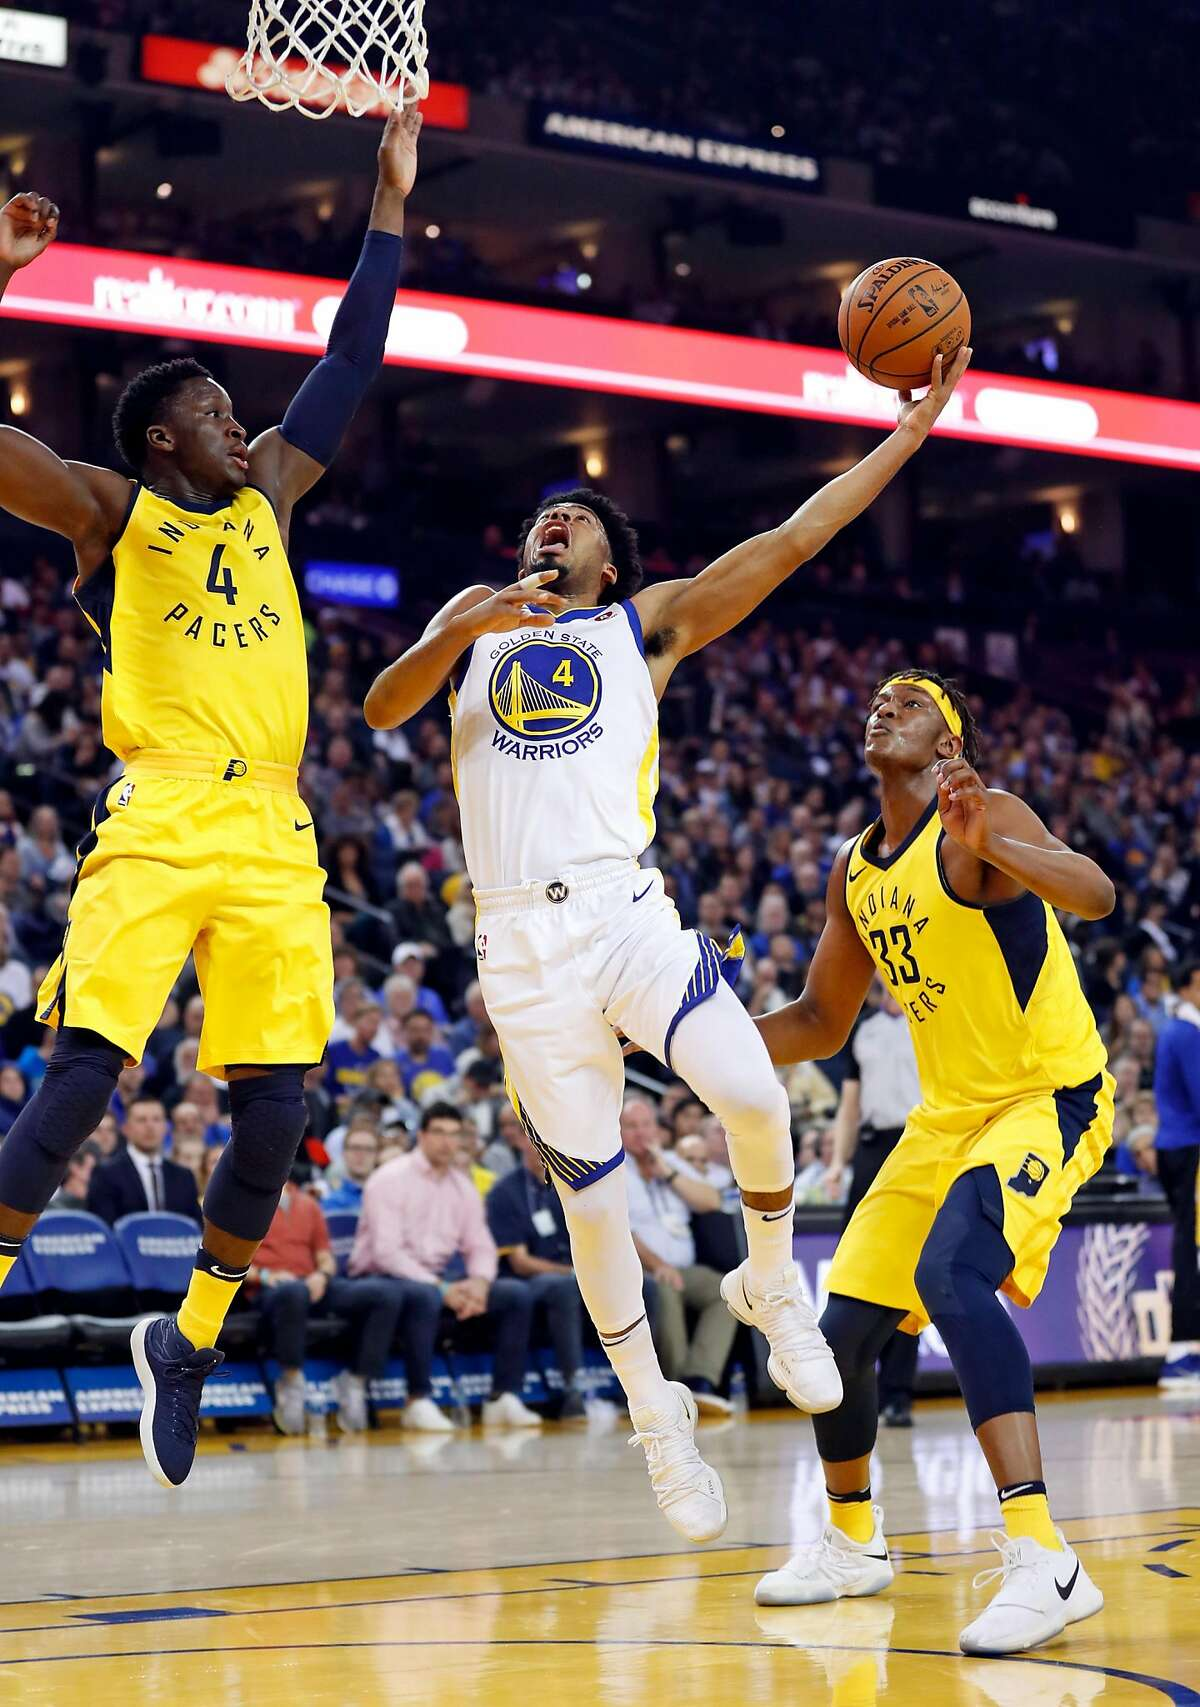 Golden State Warriors' Quinn Cook shoots between Indiana Pacers' Victor Oladipo (4) and Myles Turner in 2nd quarter during NBA game at Oracle Arena in Oakland, Calif., on Tuesday, March 27, 2018.